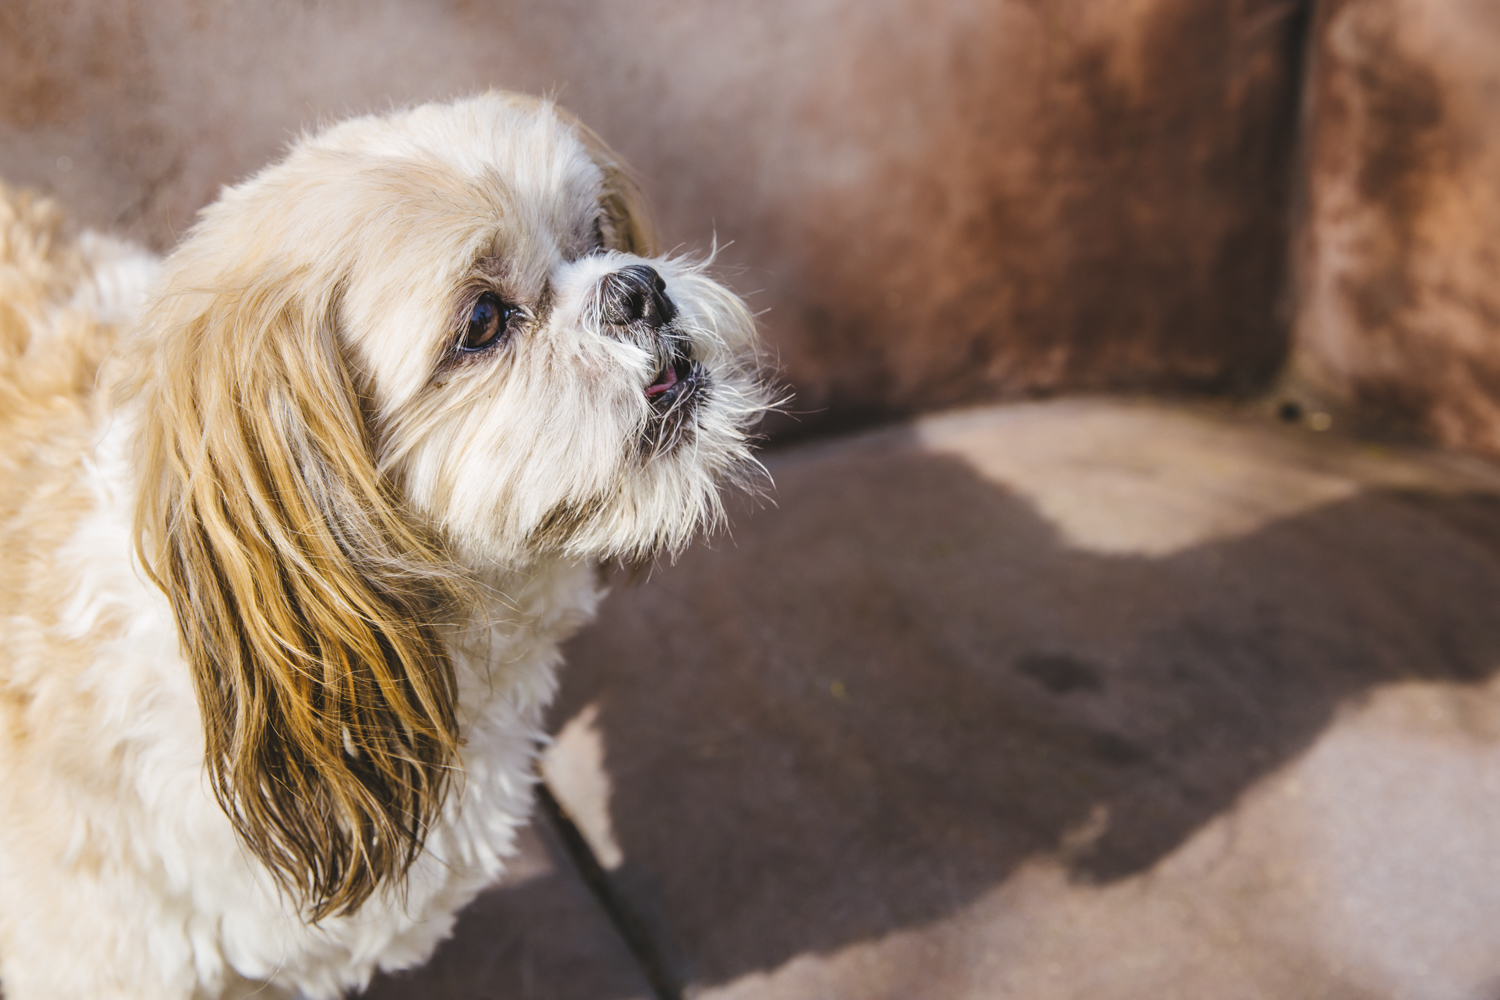 Meet 11-year-old Mick Jagger. Mick Jagger is a Shih Tzu who was rescued from the Bellevue Humane Society! Mick Jagger likes cats (even though it's not a mutual relationship) and dislikes the mailman. He does a great job of running the mailman off everyday. He hates social media because it takes up his mom's precious time when he should be the center of attention. Ain't that the truth, Mickey Baby!{ }The Seattle RUFFined Spotlight is a weekly profile of local pets living and loving life in the PNW. If you or someone you know has a pet you'd like featured, email us at hello@seattlerefined.com or tag #SeattleRUFFined and your furbaby could be the next spotlighted! (Image: Sunita Martini / Seattle Refined).{ }